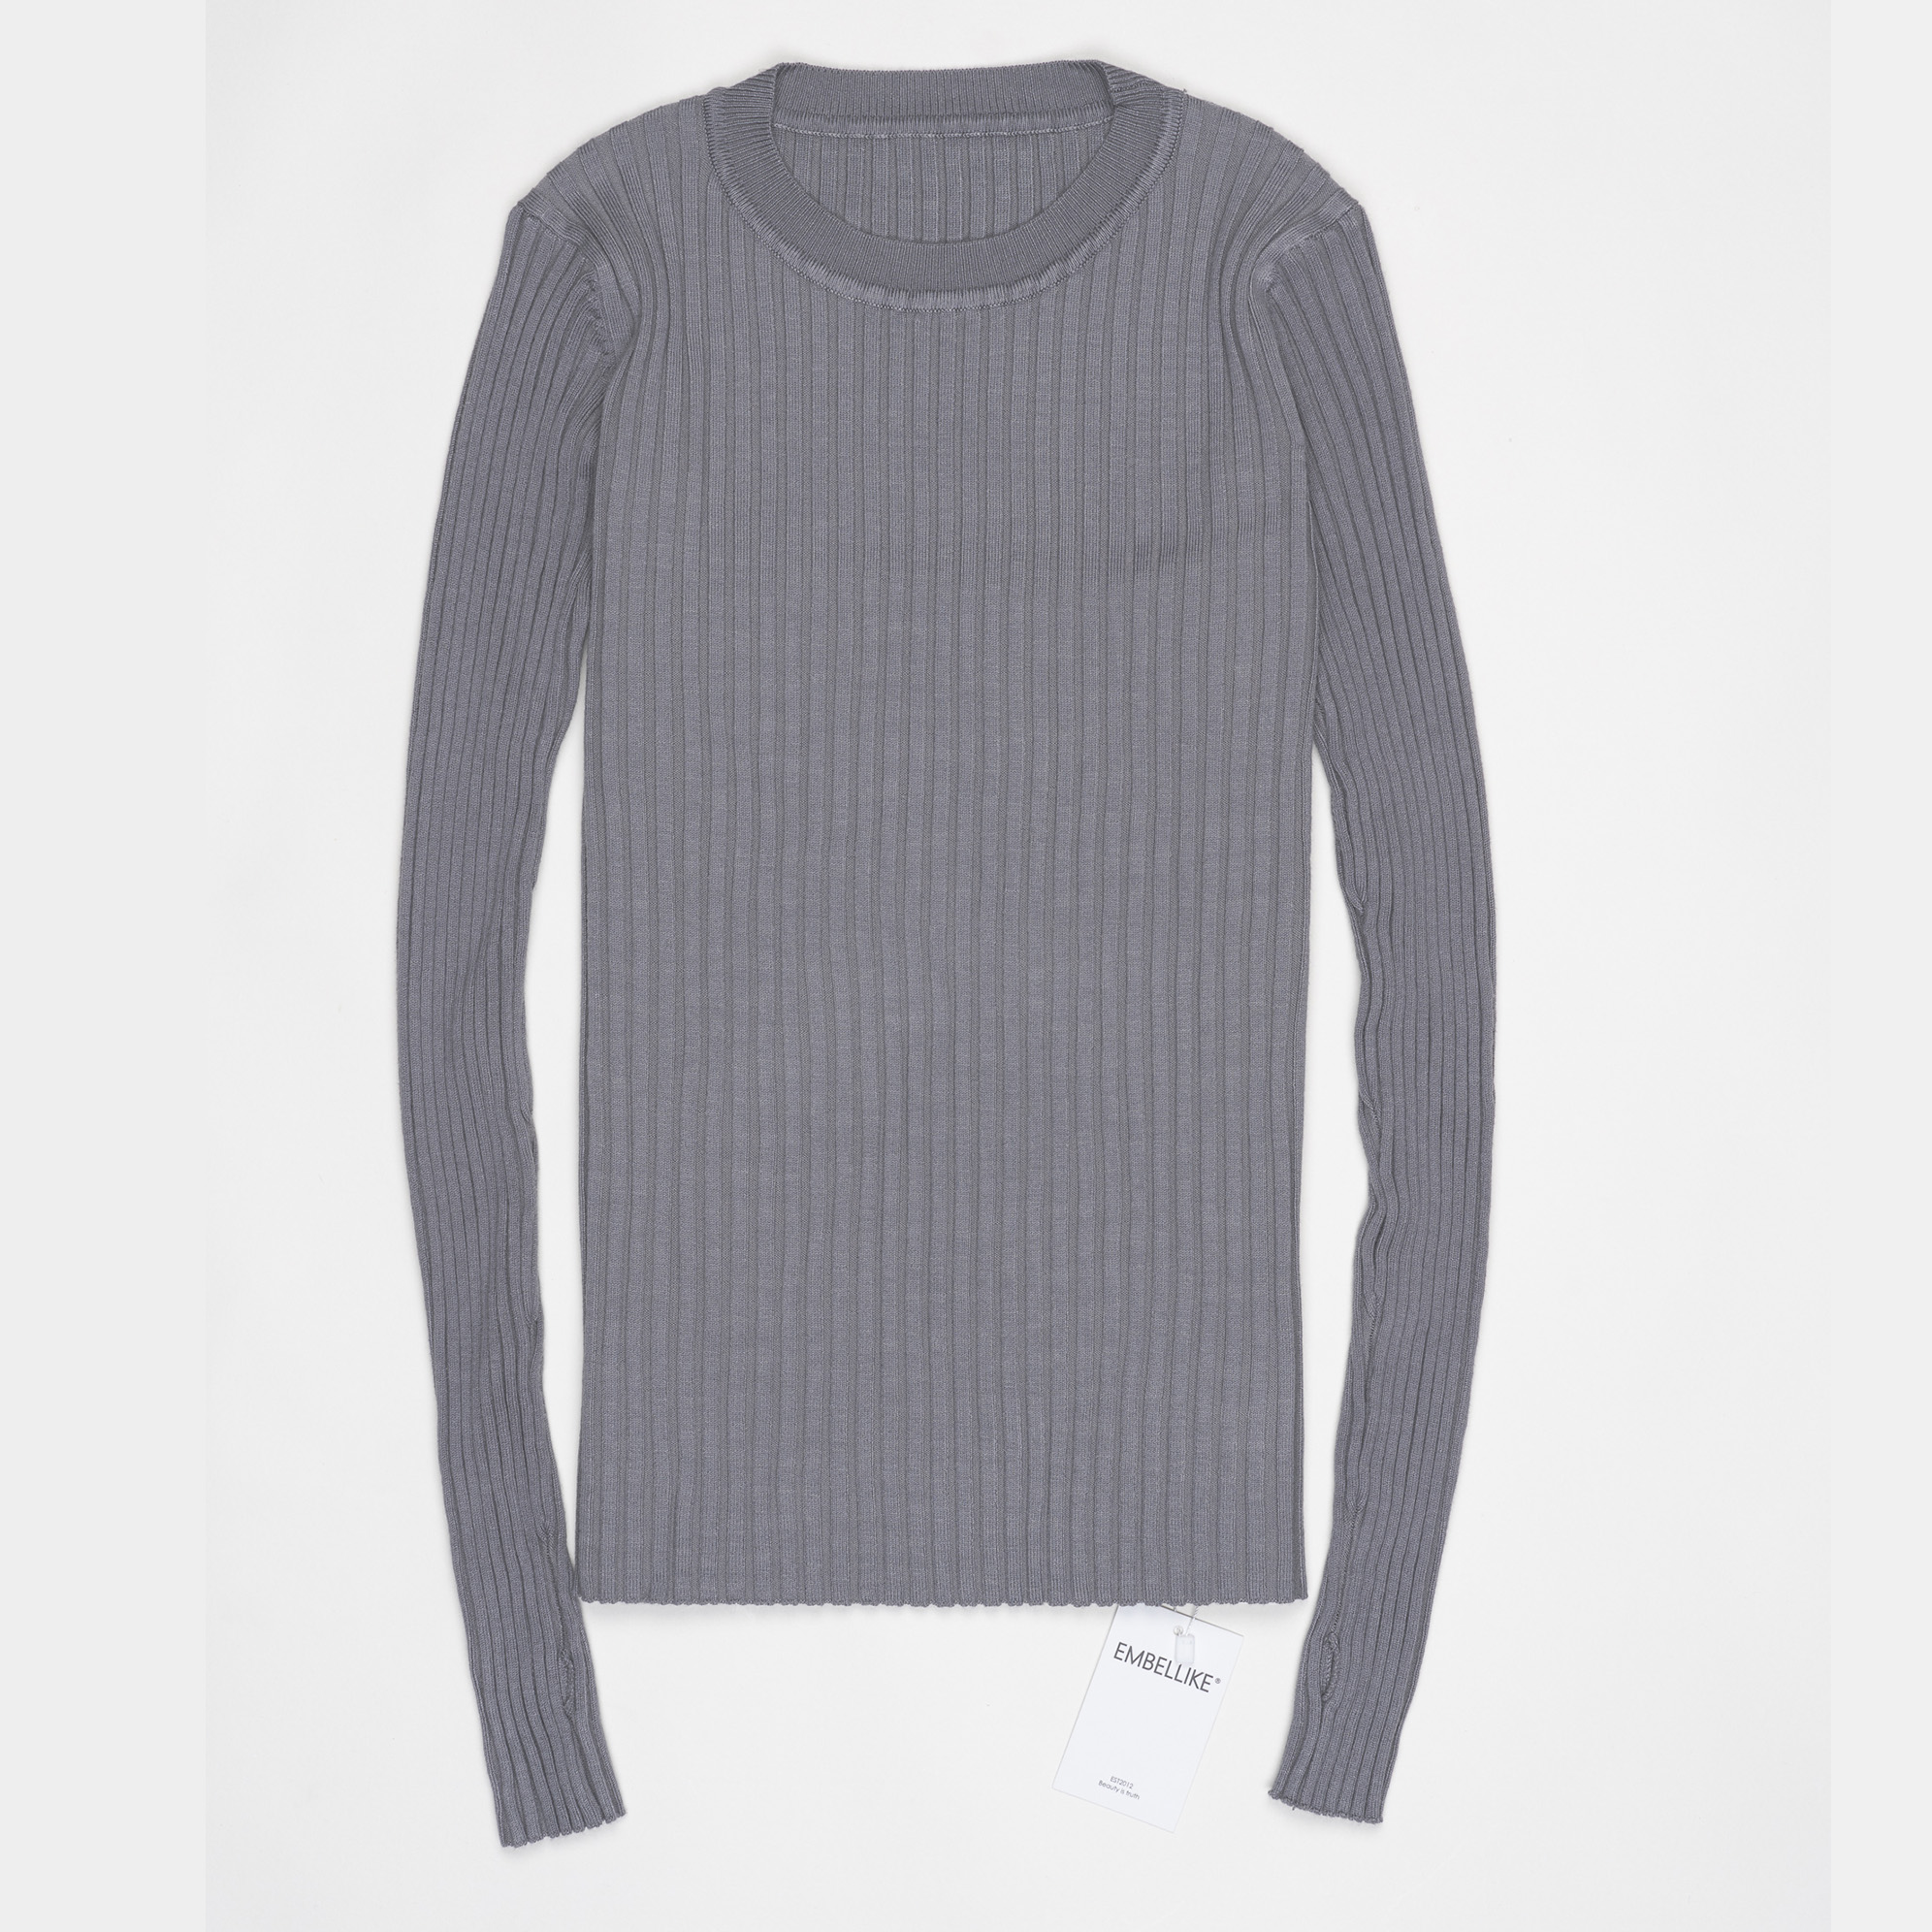 Women Sweater Pullover Basic Ribbed Sweaters Cotton Tops Knitted Solid Crew Neck With Thumb Hole 29